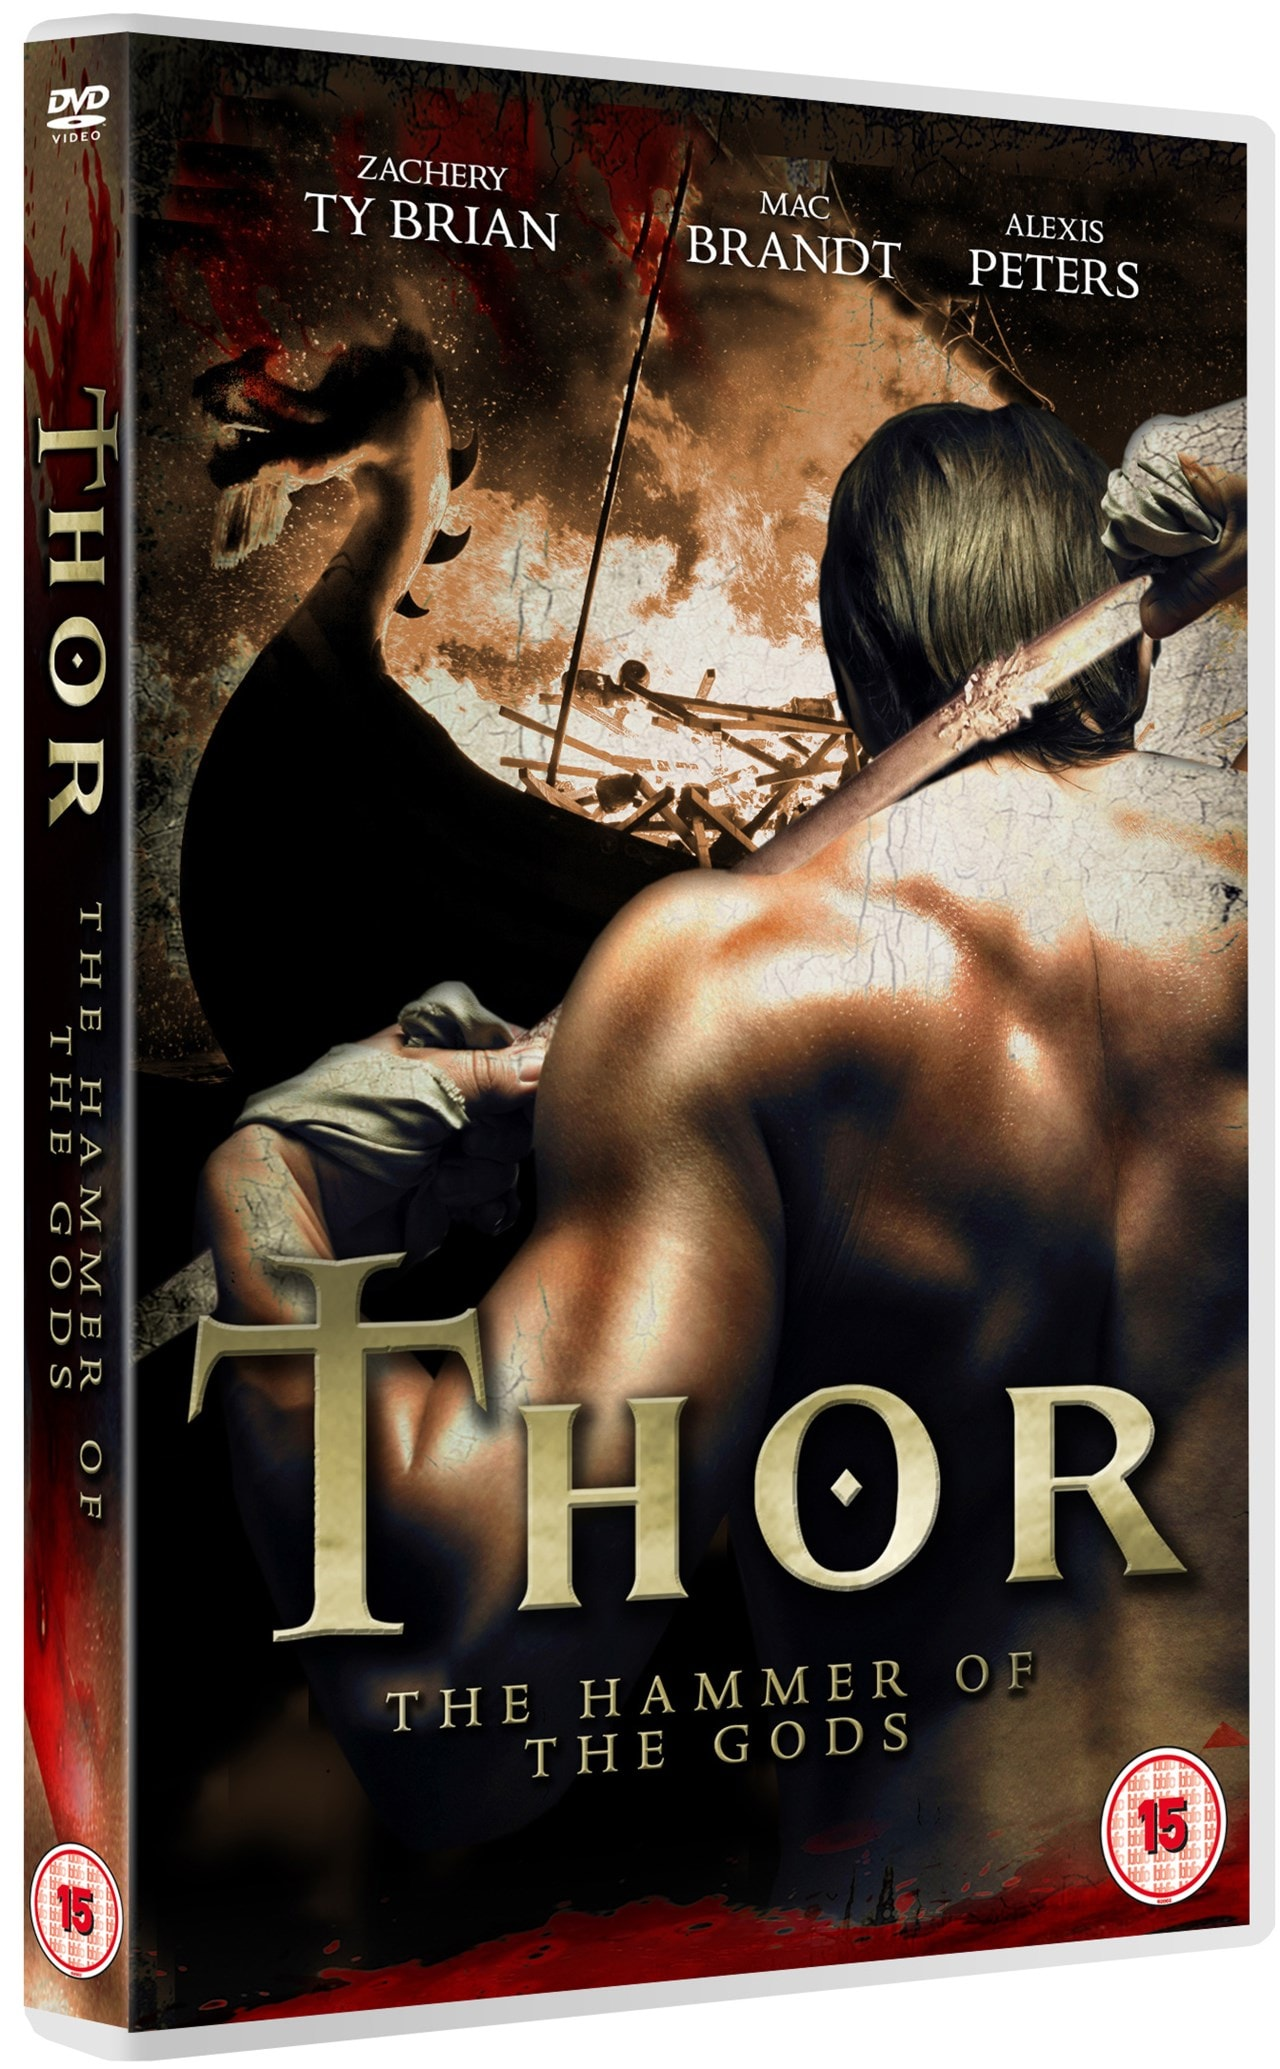 Thor - The Hammer of the Gods - 2